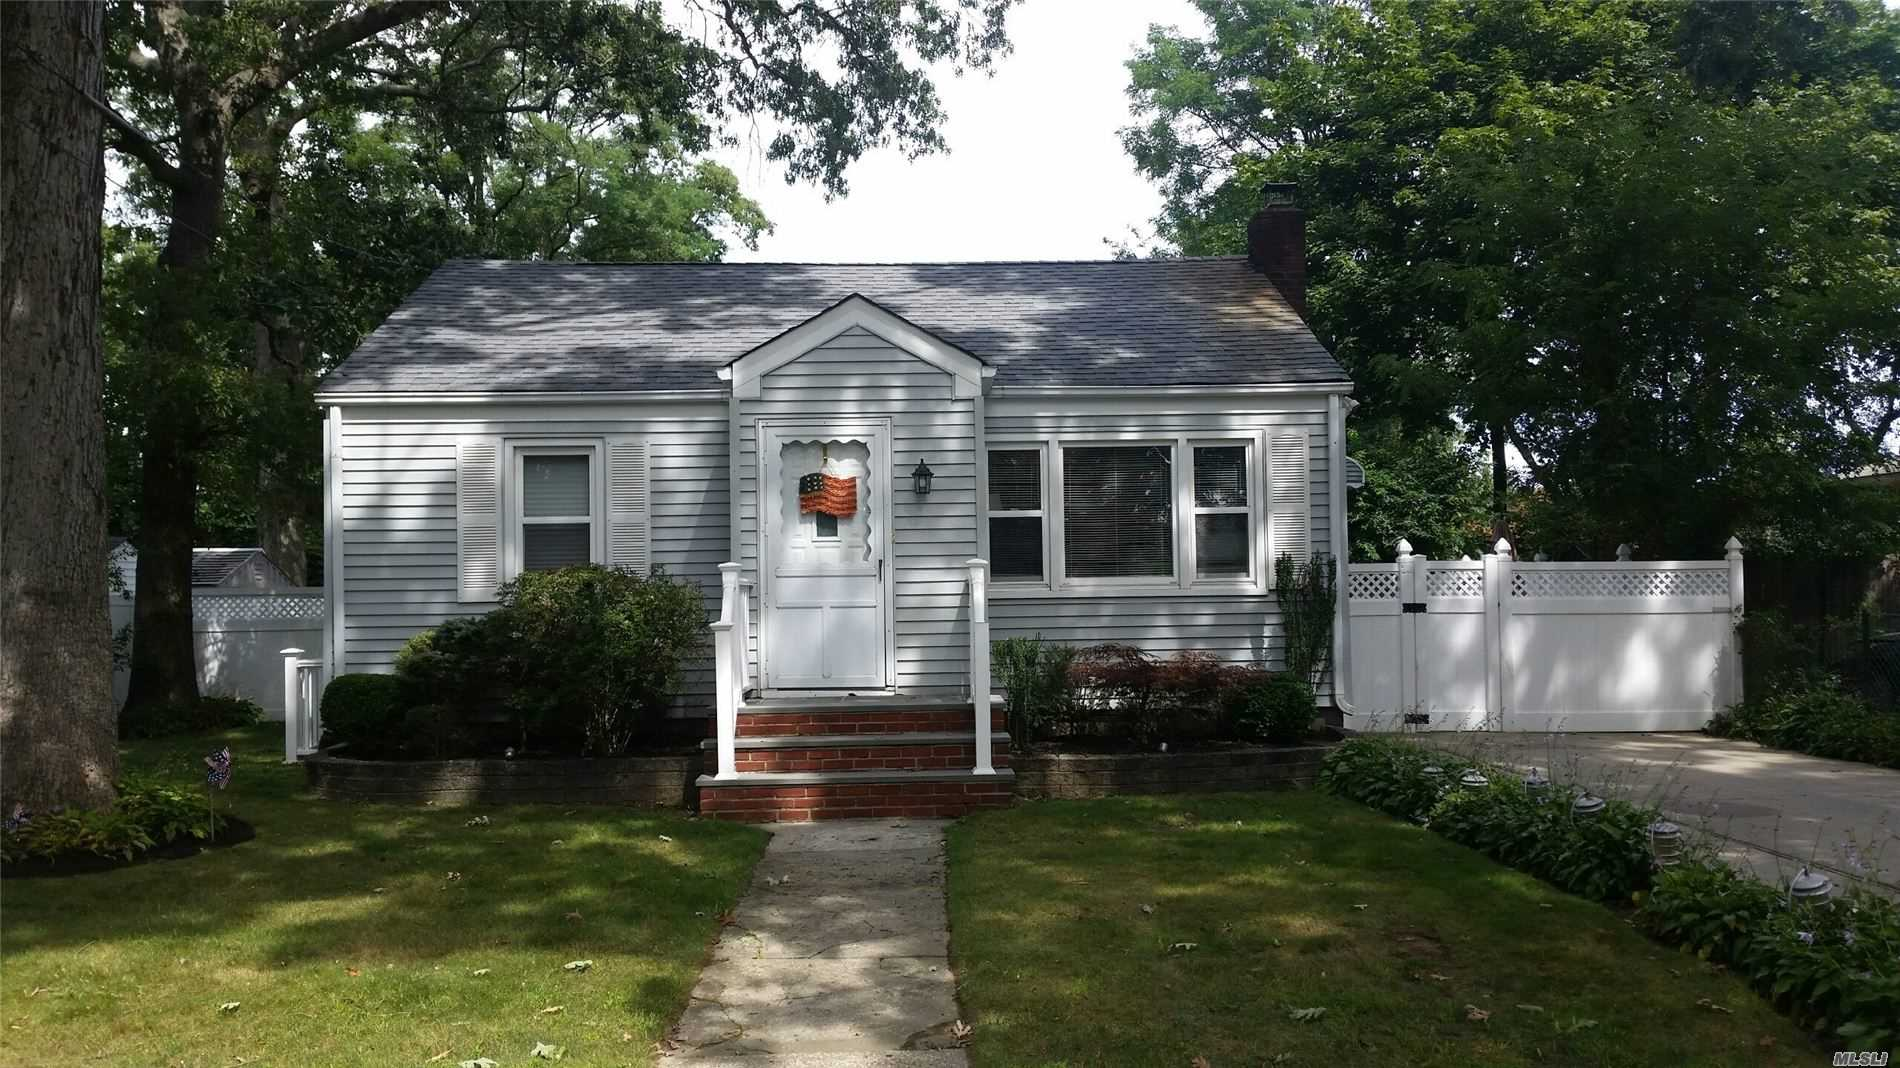 9 Oakleigh St - Patchogue, New York